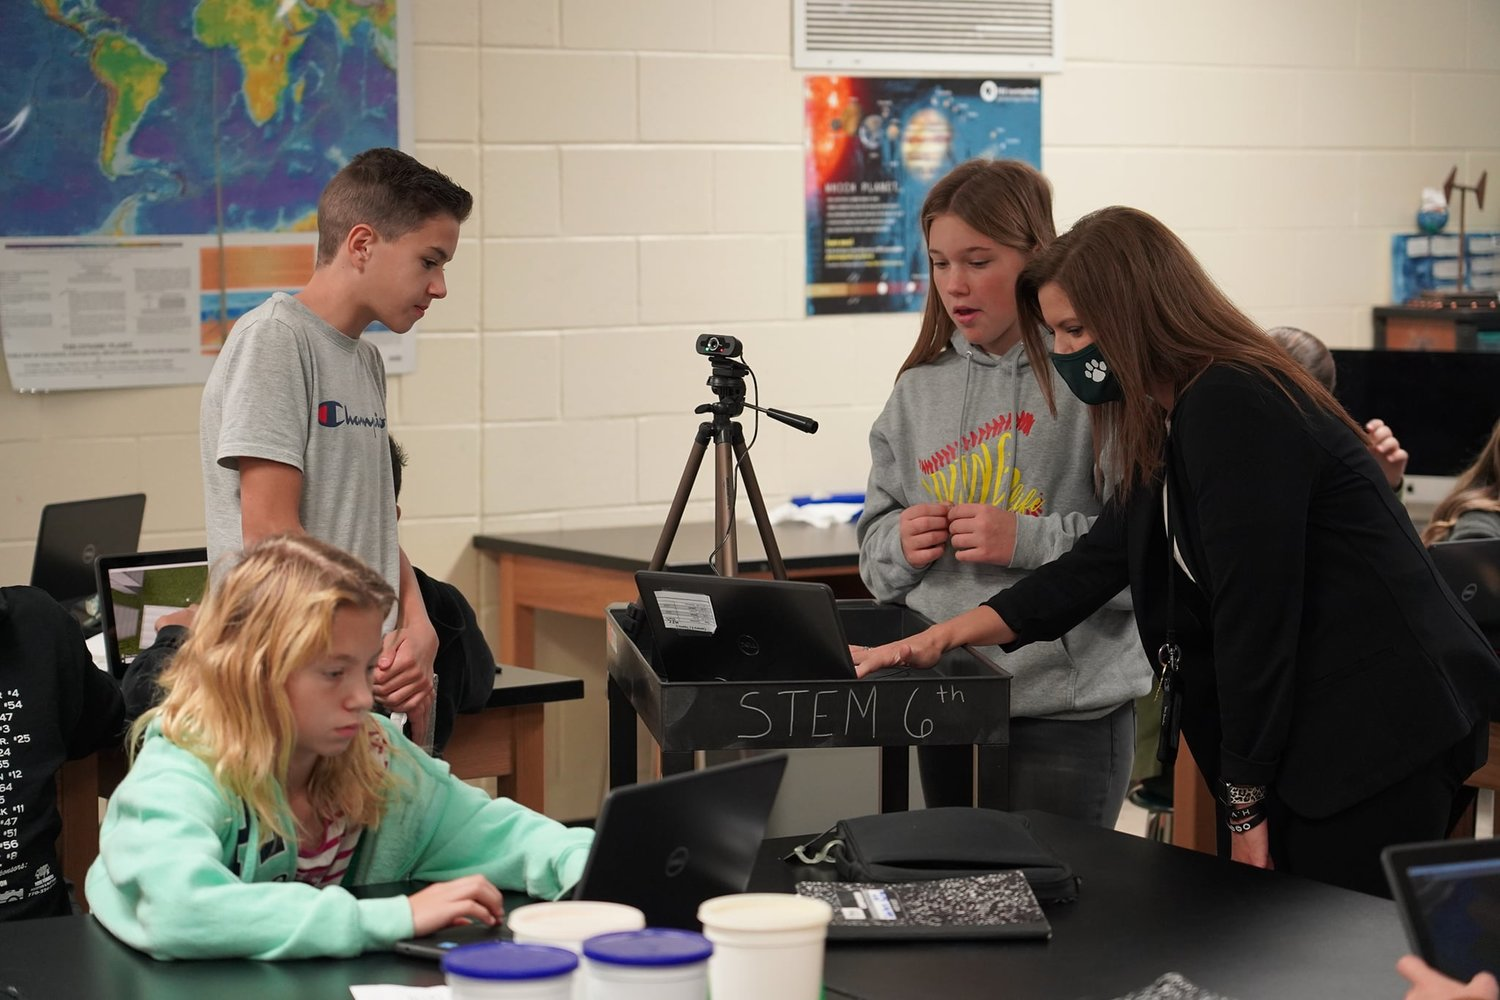 Adairsville Middle sixth-graders, from left, Sarenidy Powell, Ashton Evans and Ashlynn Durden and instructional lead teacher Brittany McCord make their presentation to state leaders during the final STEM walk for the school's state STEM certification last month.